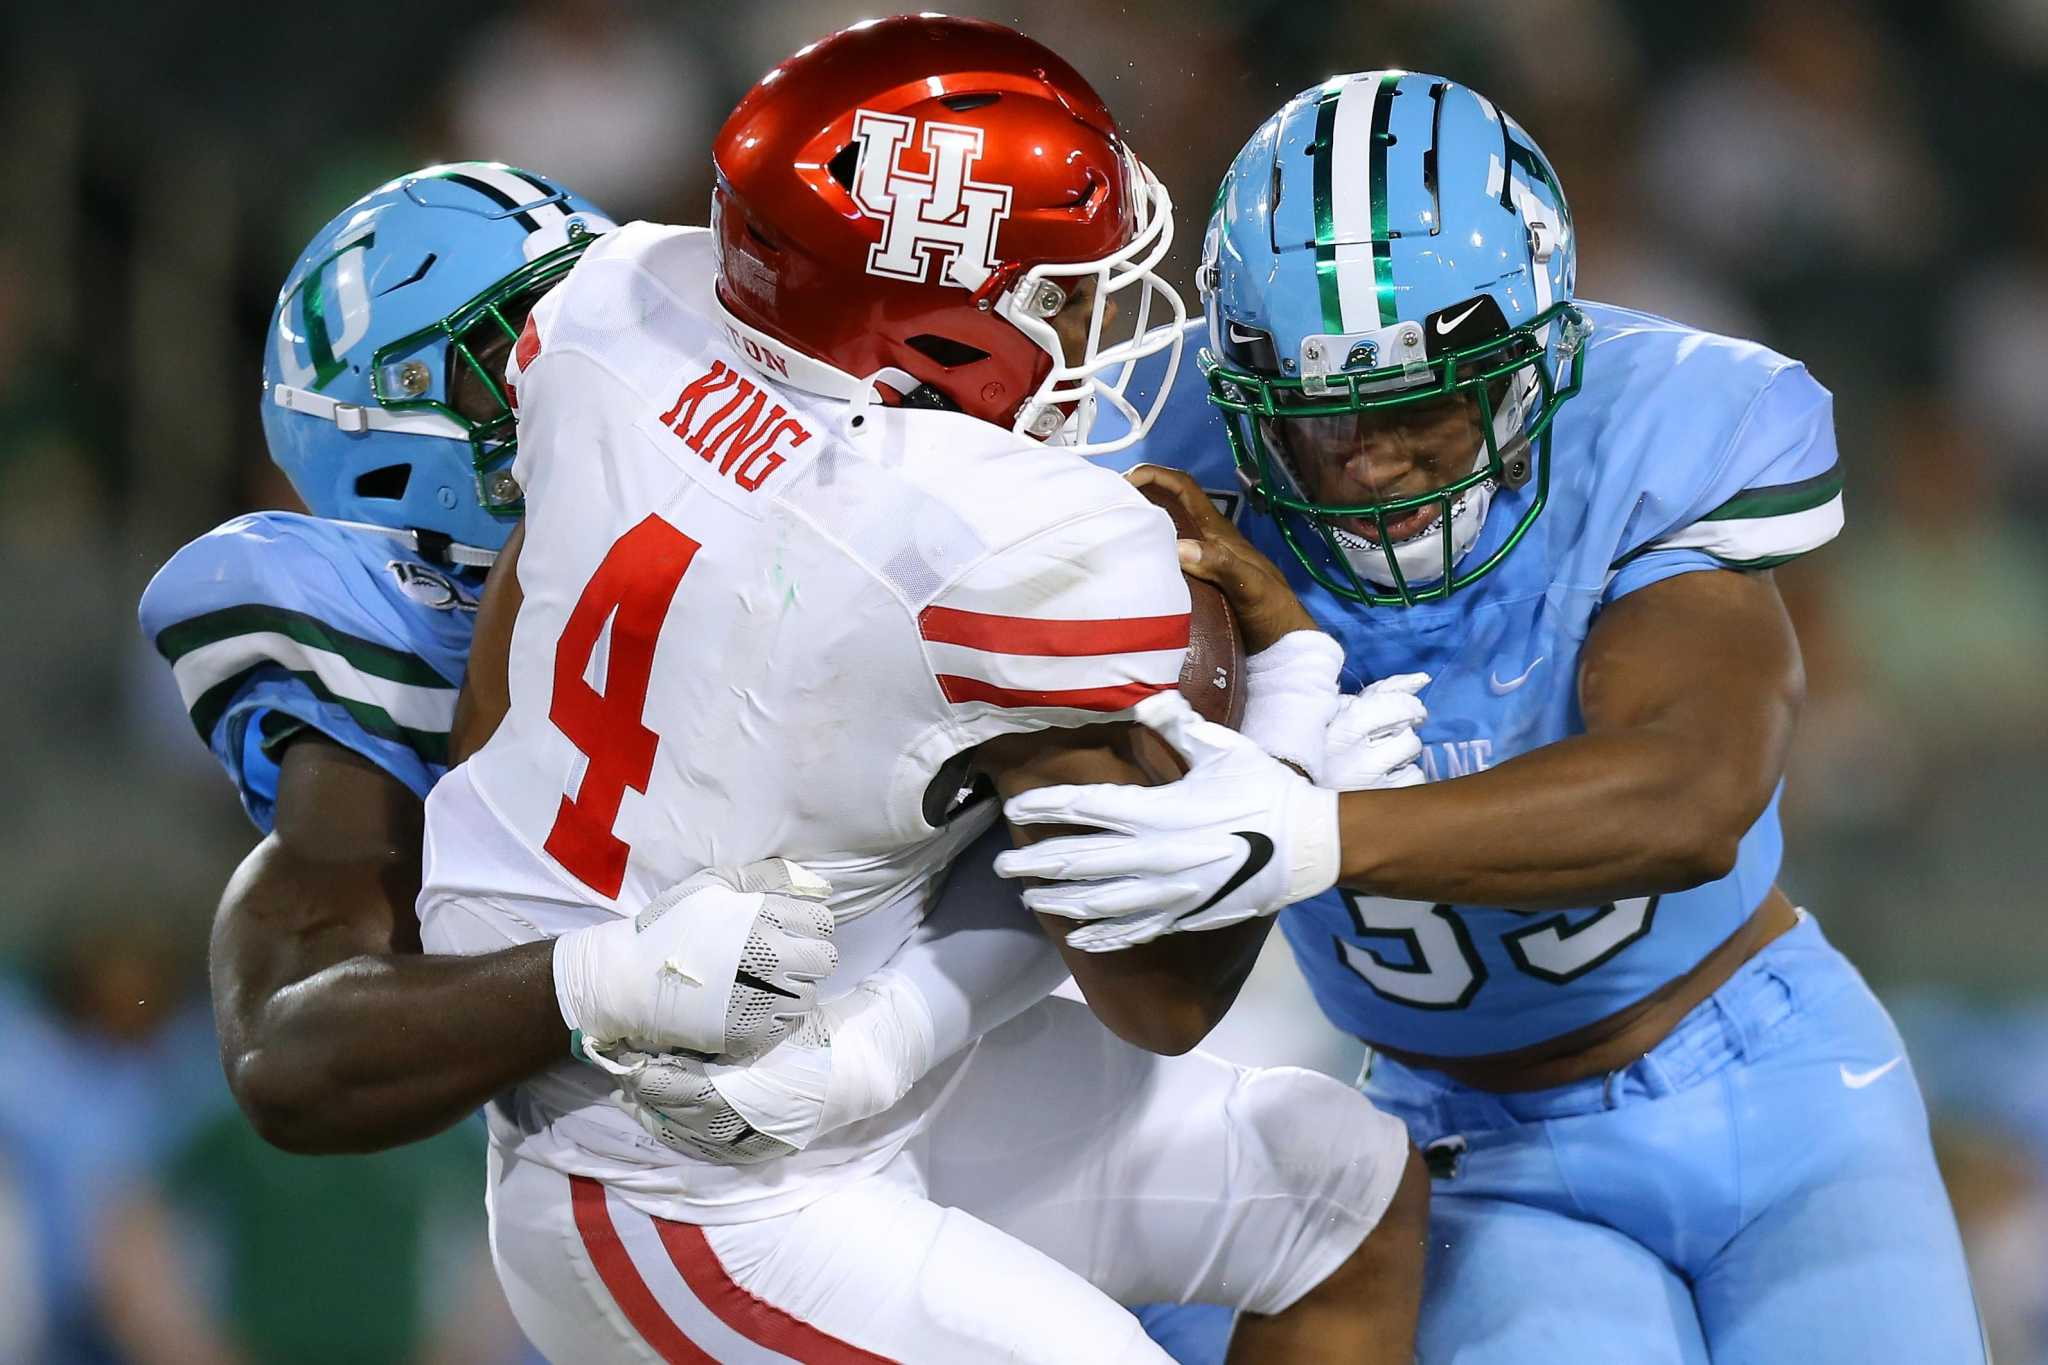 'We have to get better,' UH quarterback D'Eriq King says